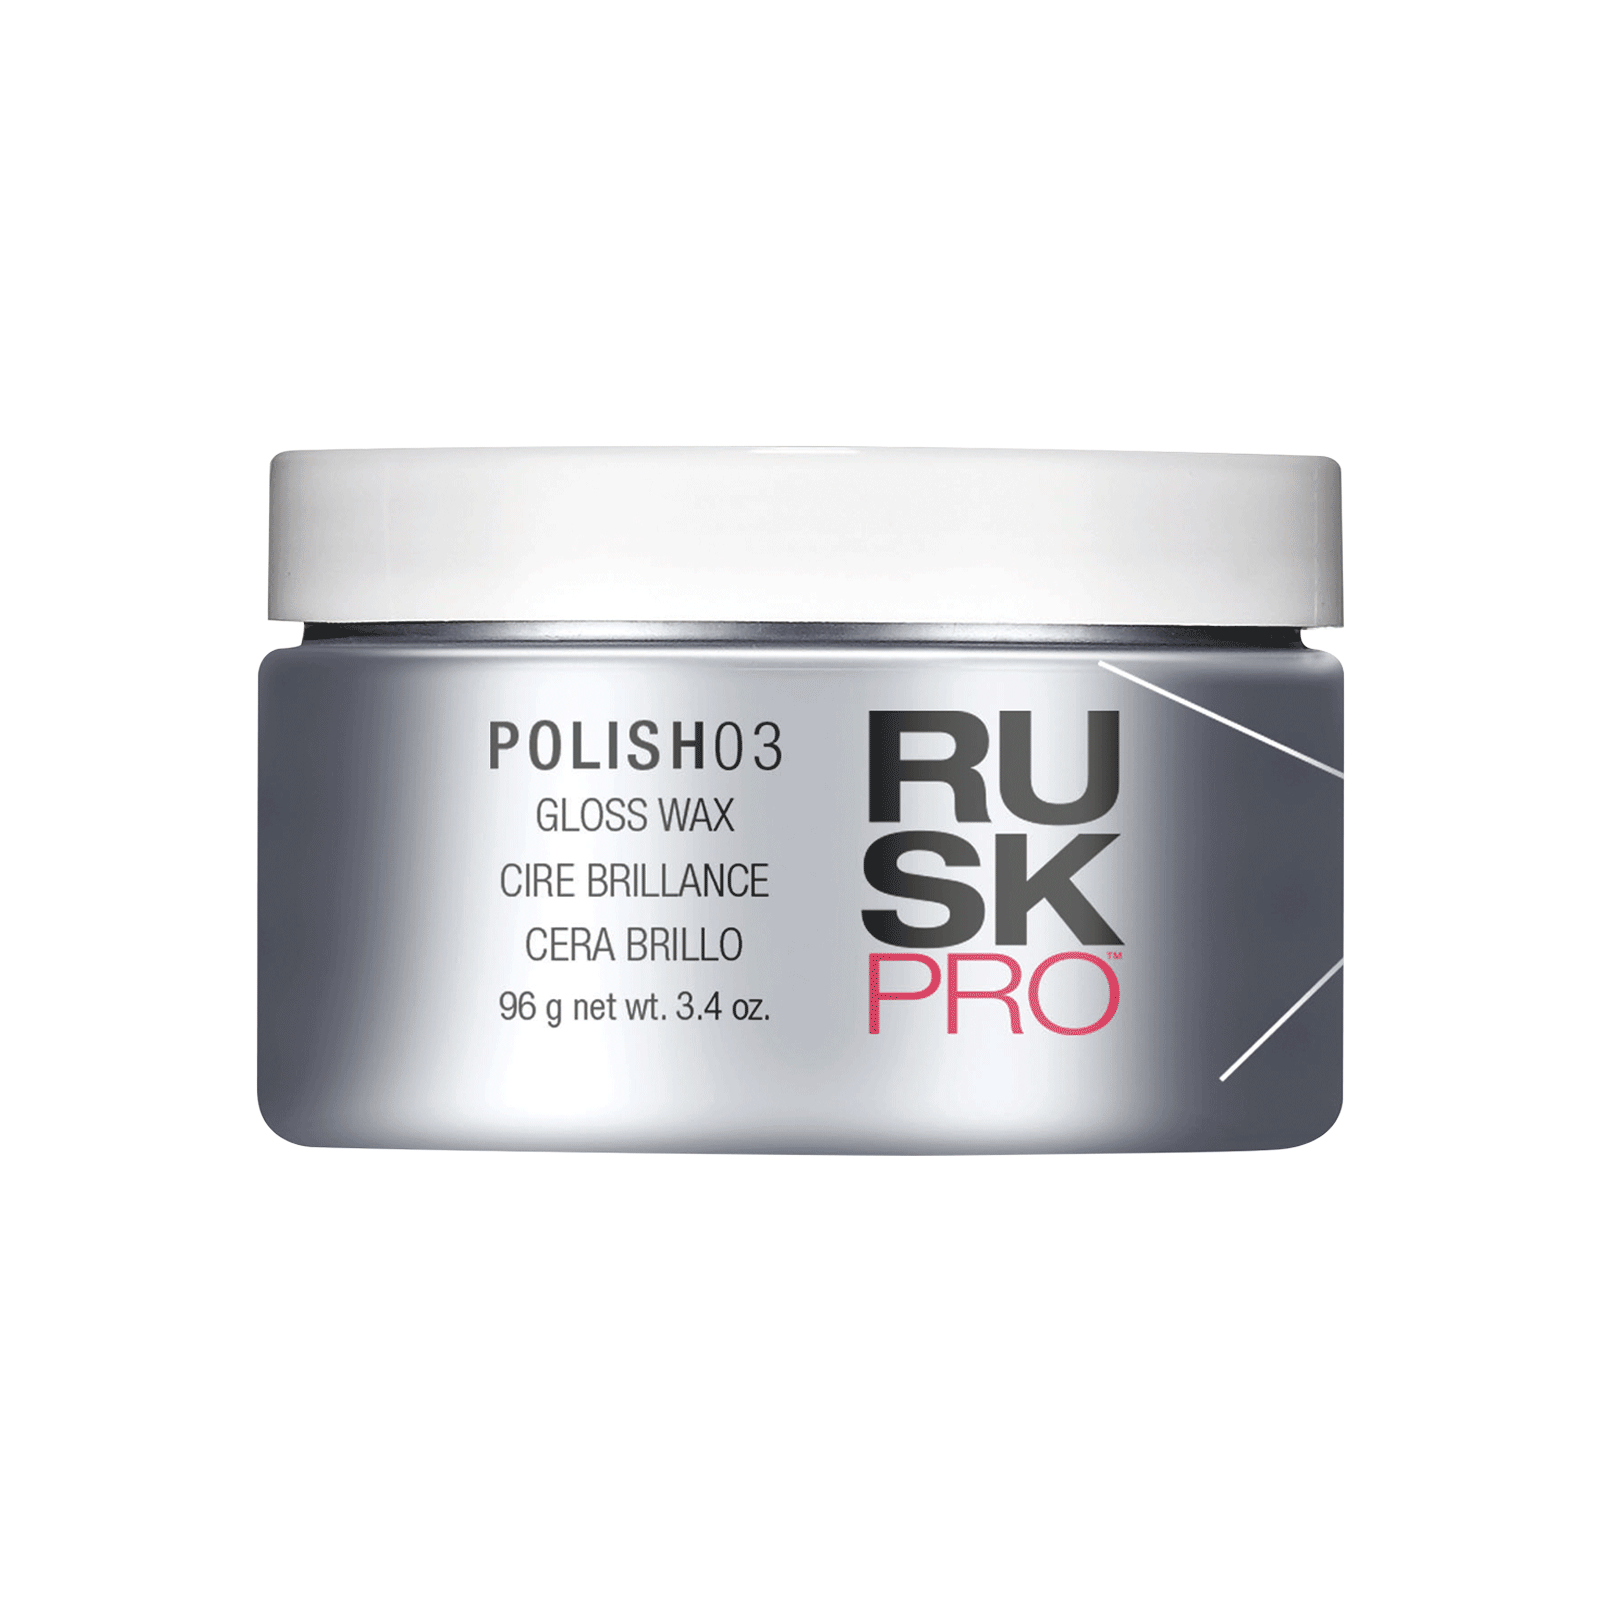 RuskPRO Polish03 Gloss Wax